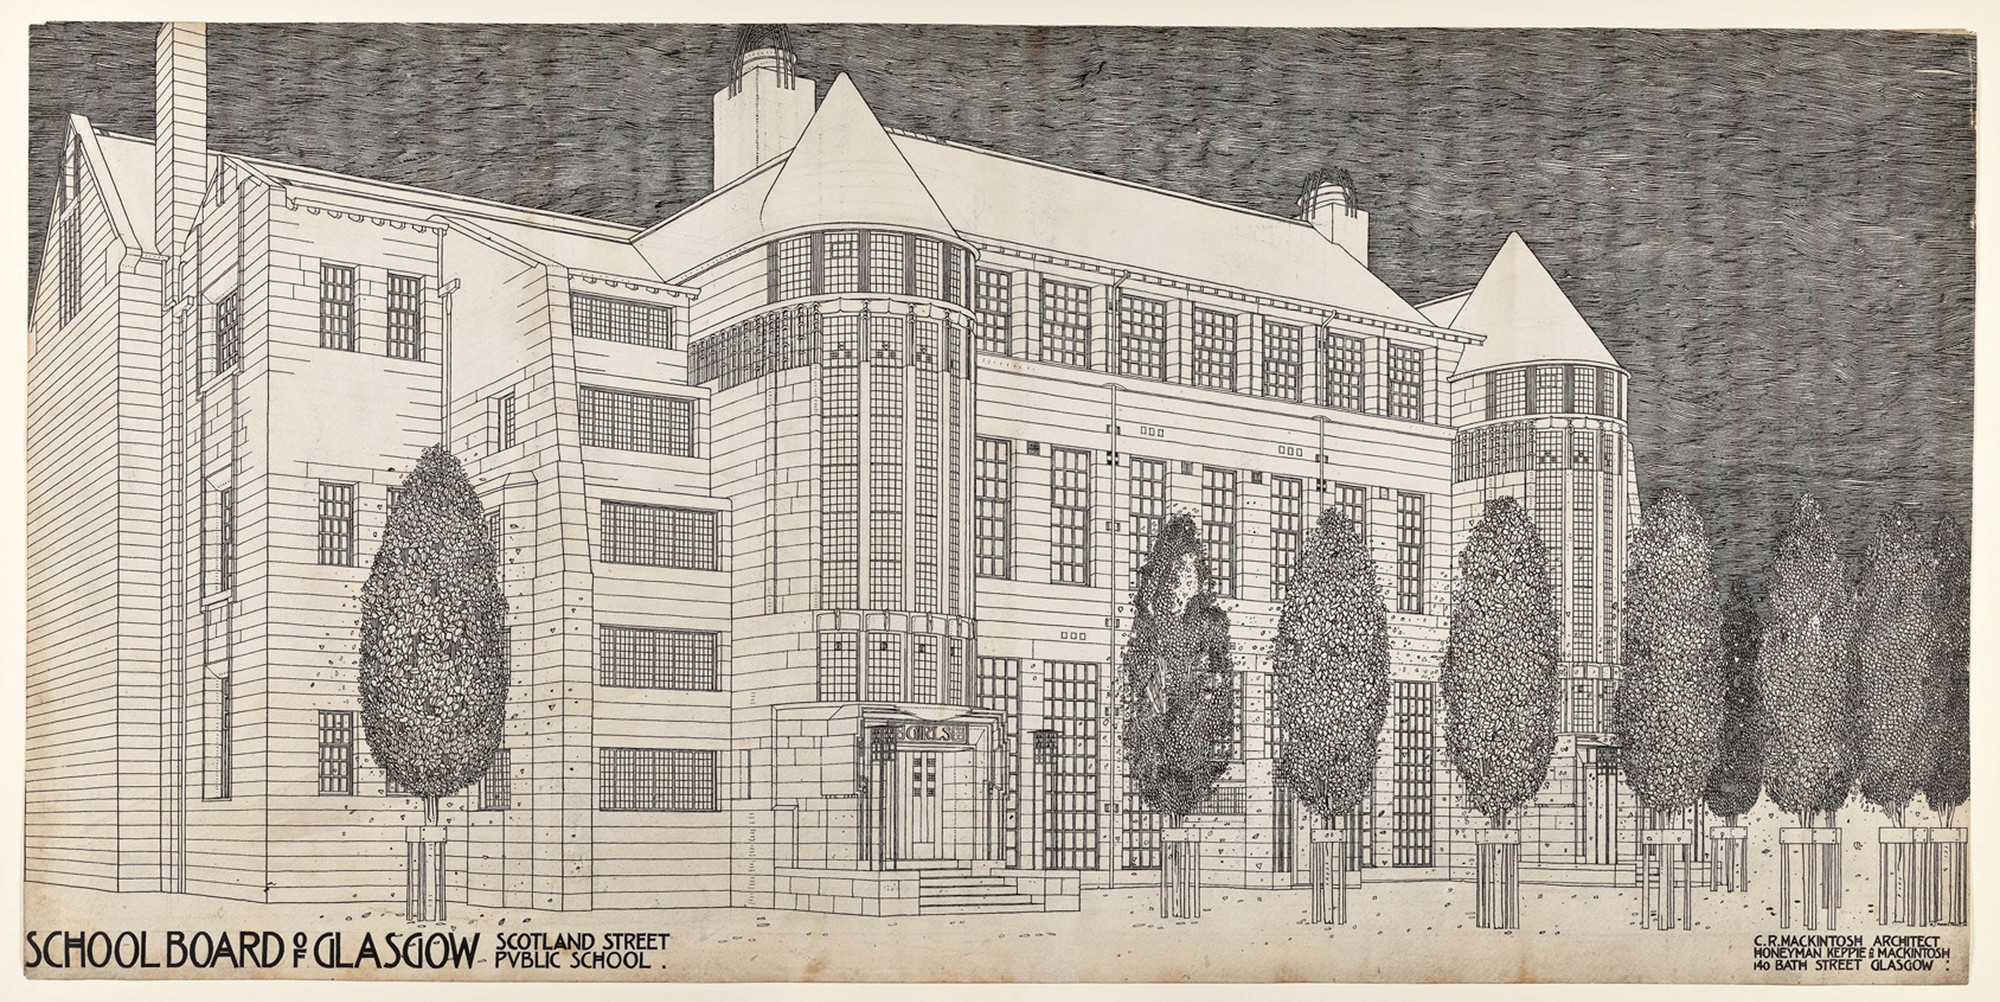 RIBA Announces Charles Rennie Mackintosh Retrospective for 2015, Design for Scotland Street School by Charles Rennie Mackintosh. Image © Hunterian, University of Glasgow